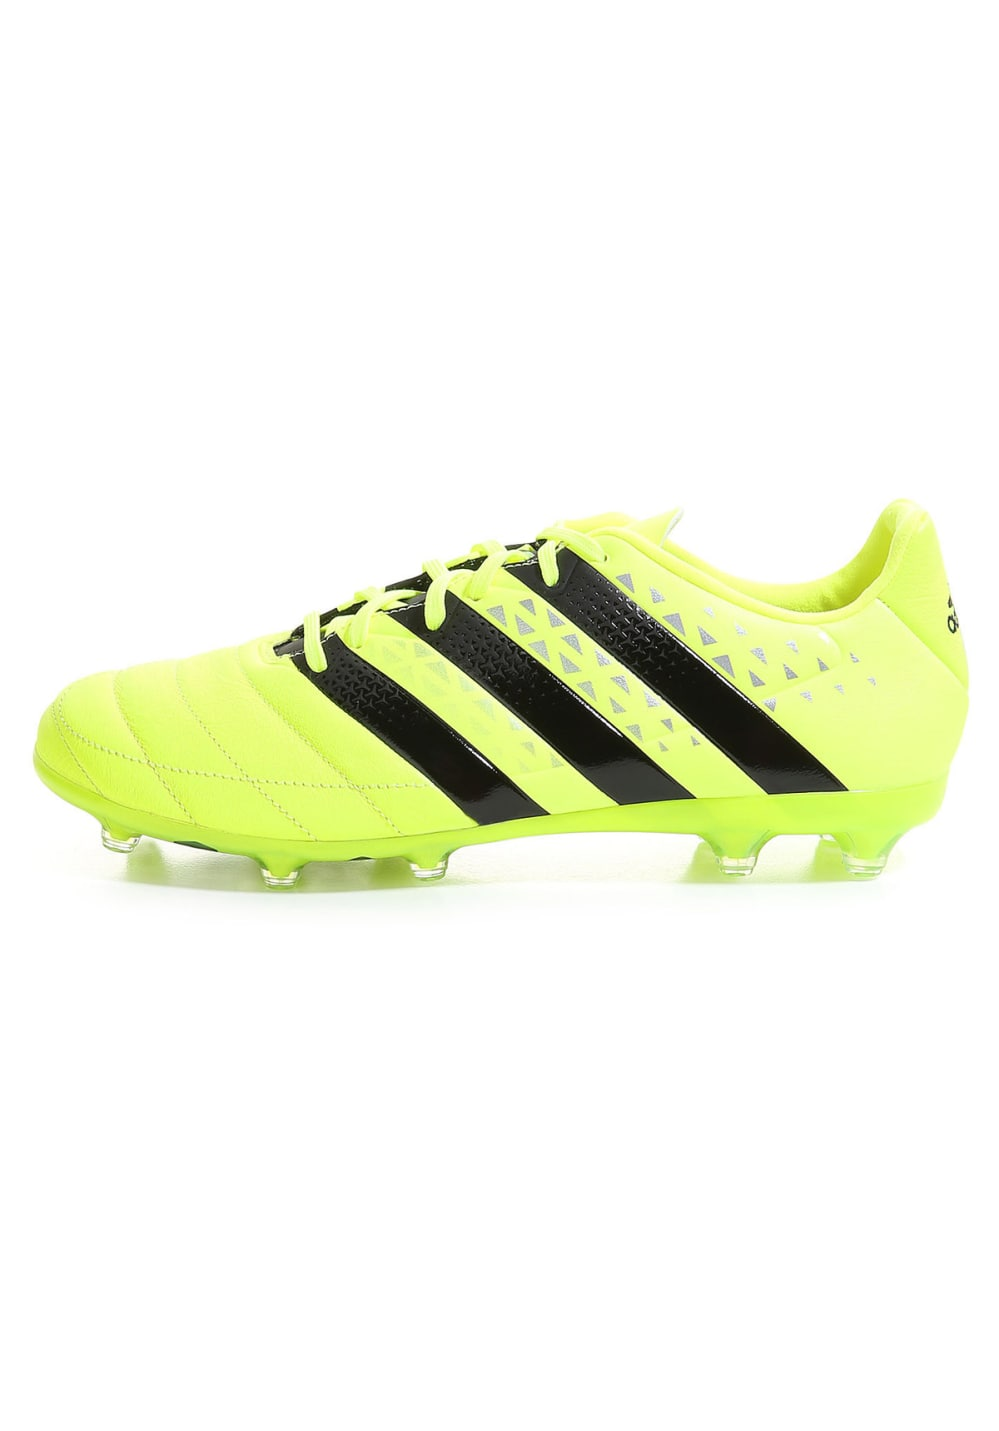 cheaper c5f43 c3218 adidas ACE 16.2 FG Leather - Football Shoes for Men - Yellow